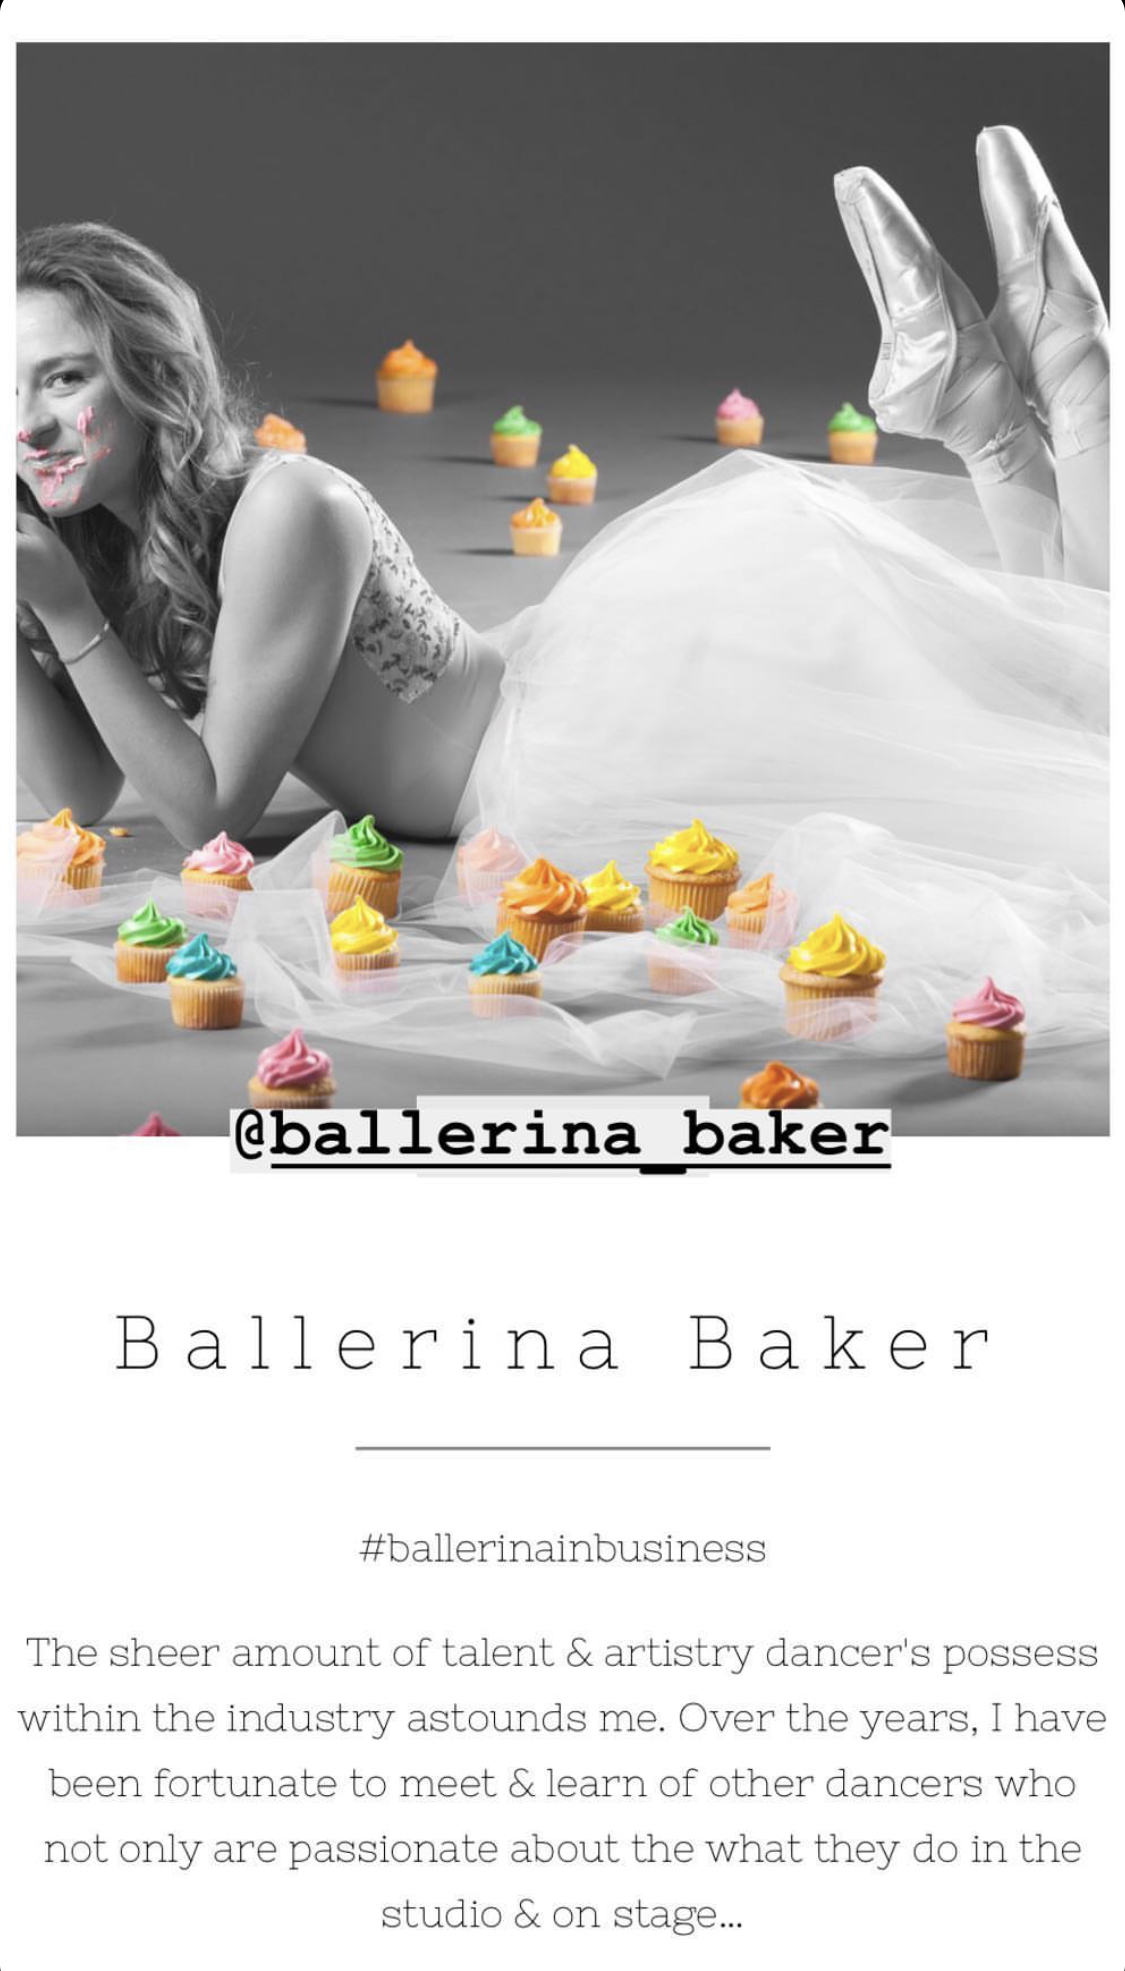 - Summer of 2018. I decided to highlight other dancers in business on my blog with the hashtag #ballerinainbusinessIt was so inspiring to see dancers building businesses! I featured 20 female entrepreneurs and loved every second.